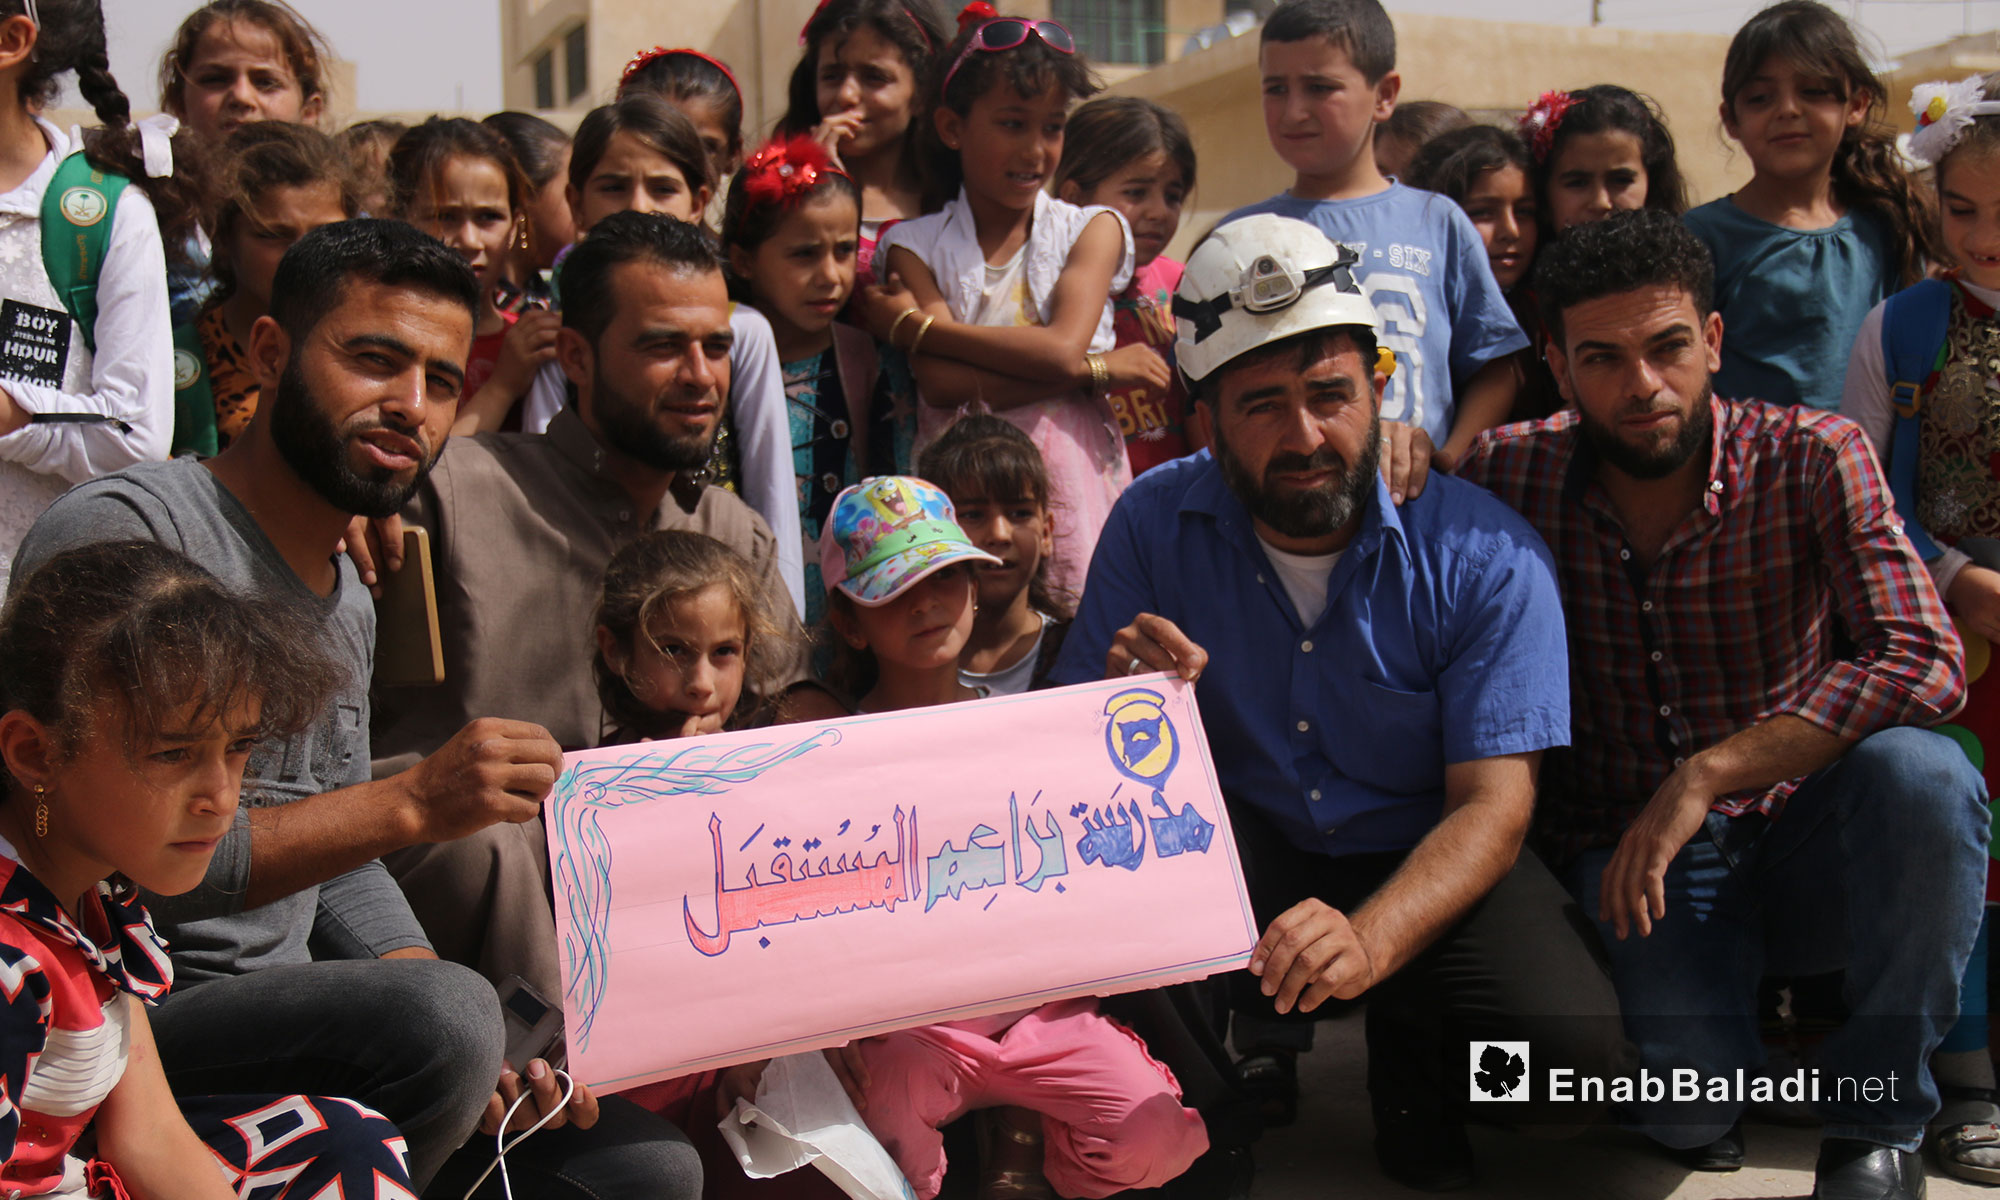 """Teachers and students from """"The Buds of the Future"""" school stand in solidarity with the """"White Helmets"""" in rural Idlib (the sign in the picture says: The Buds of the Future School) – July 25, 2018 (Enab Baladi)"""